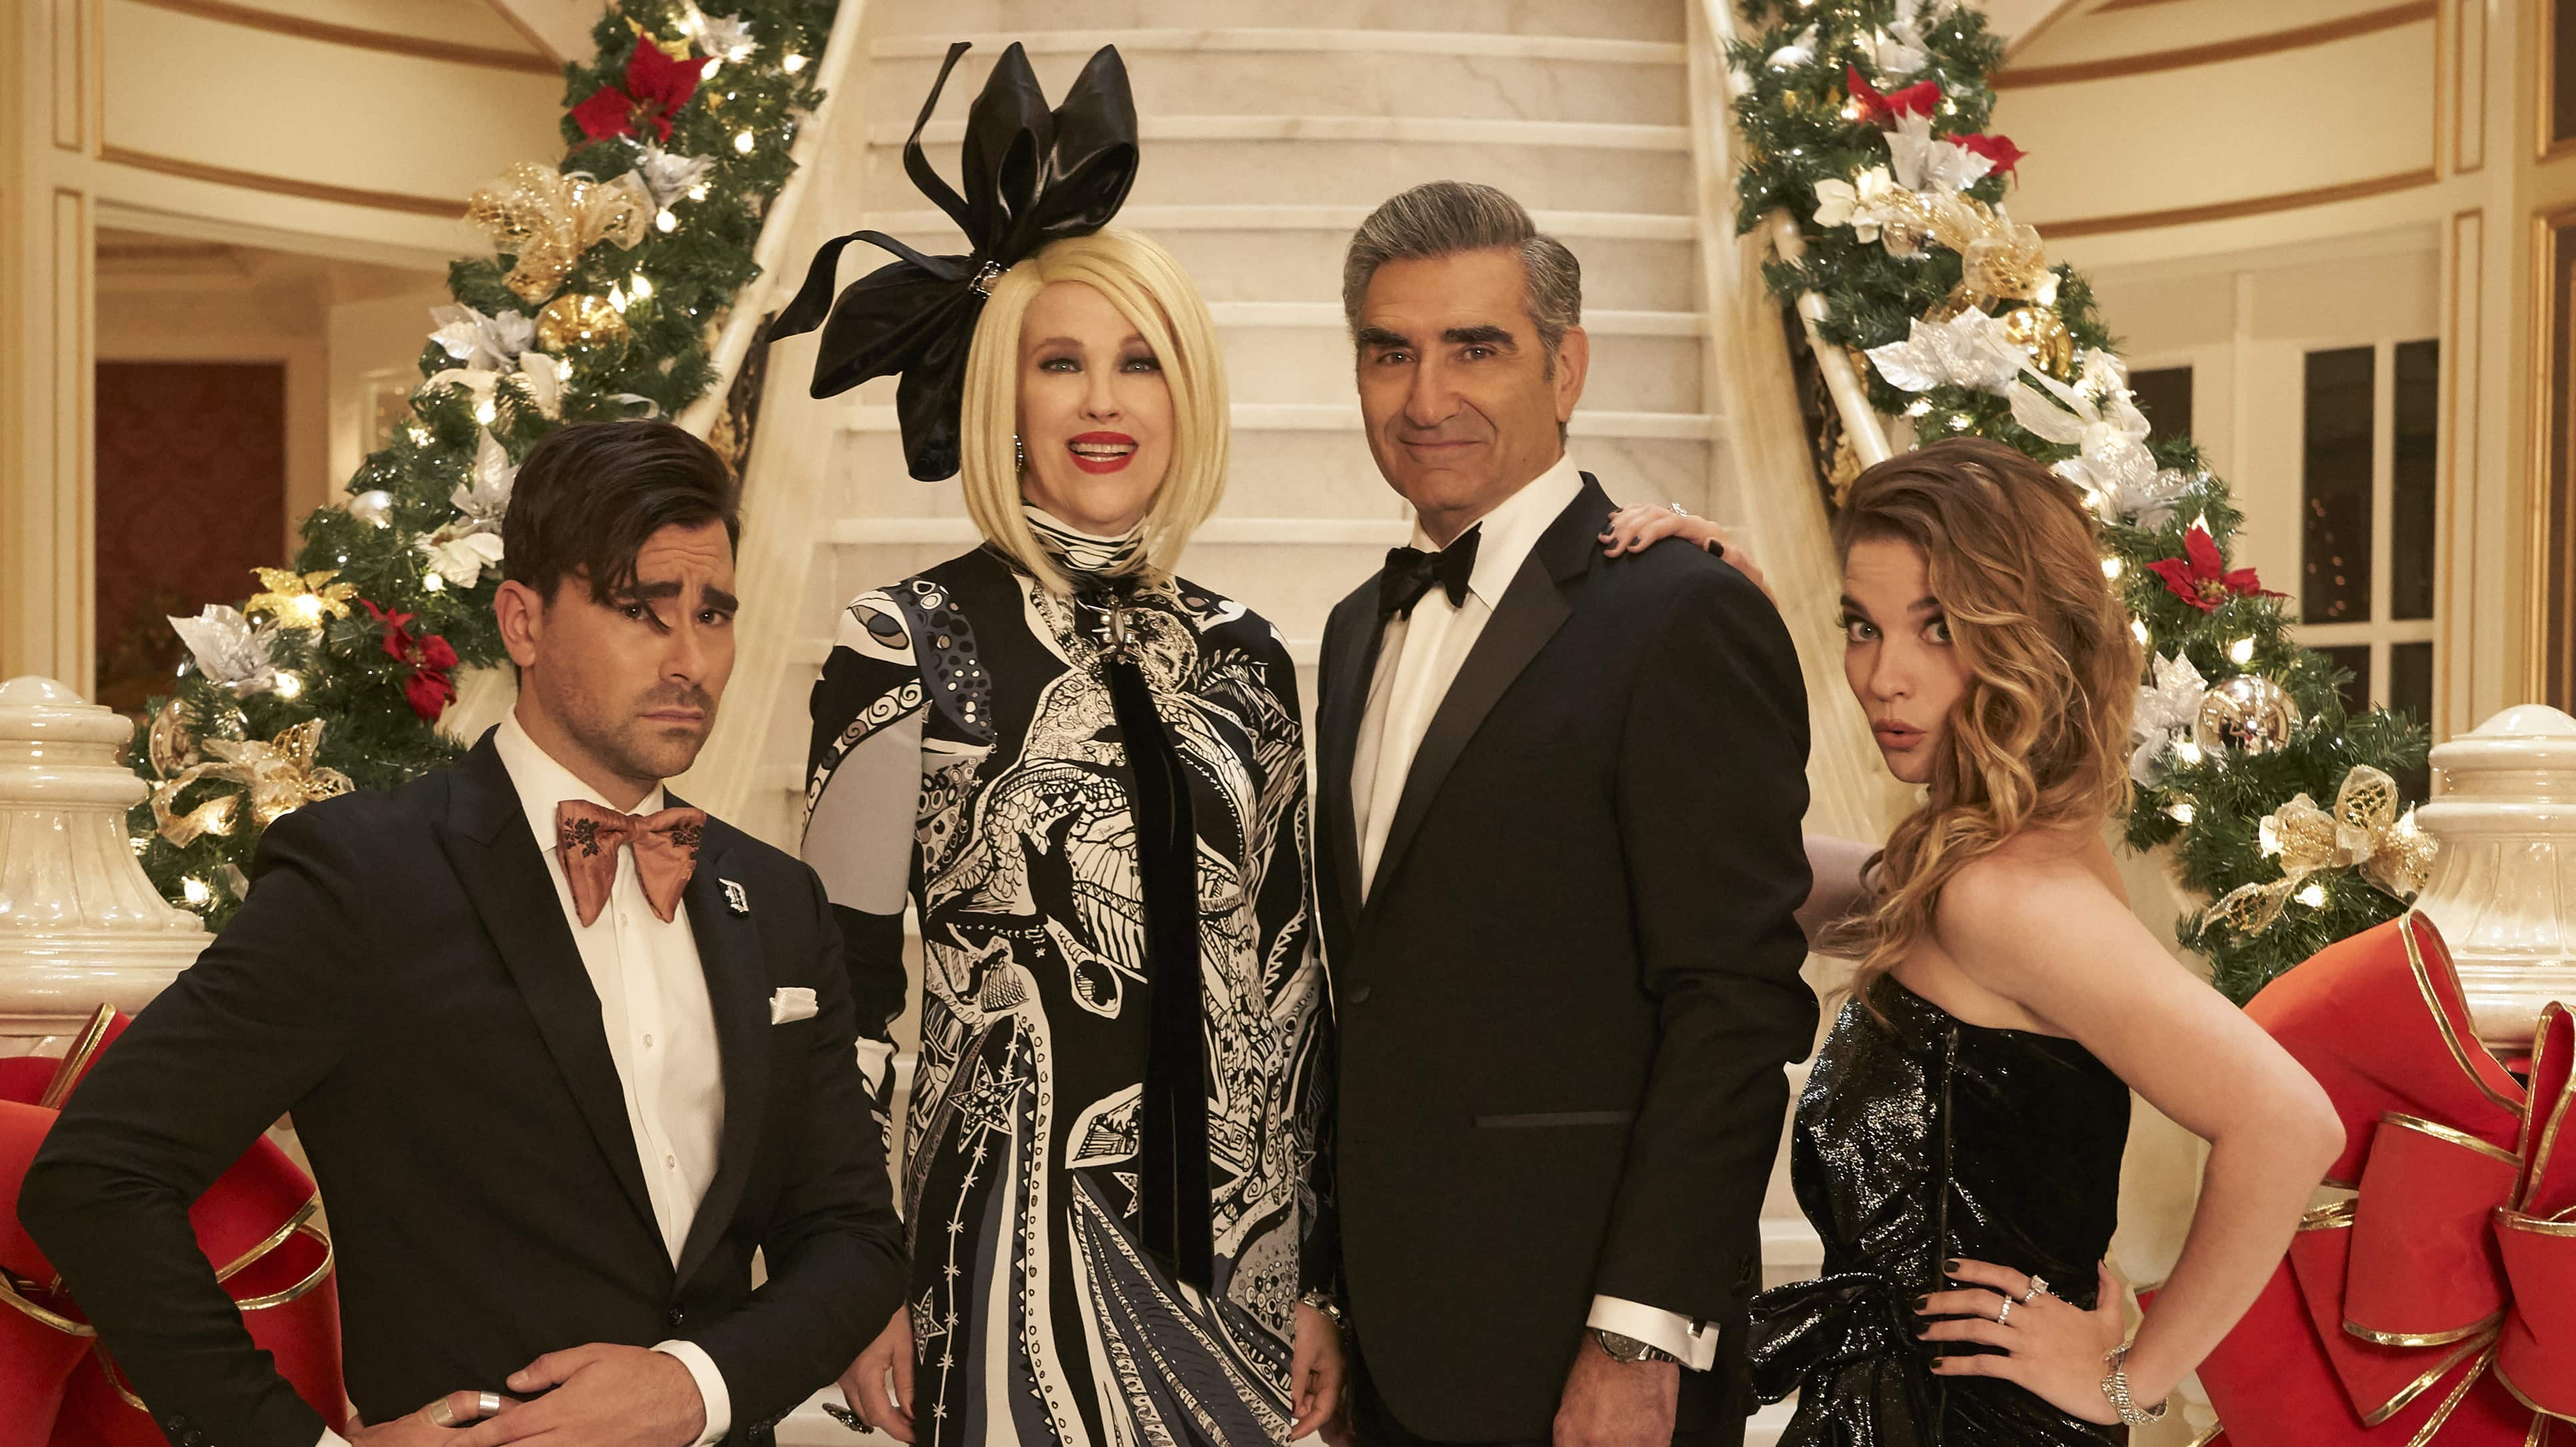 The cast of Schitt's Creek in front of a large staircase decorated for the holidays